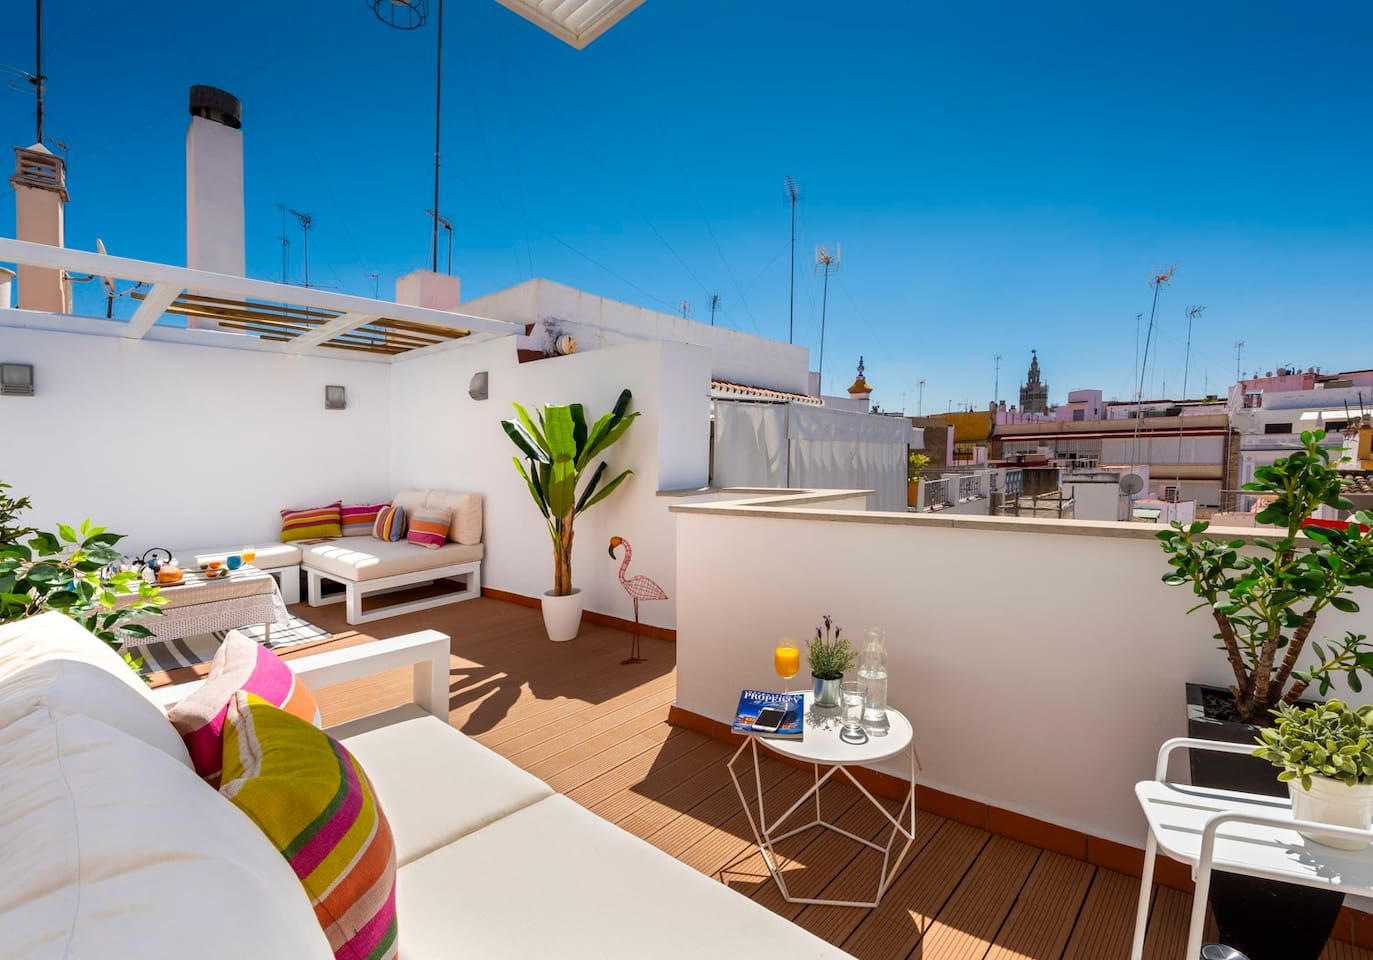 Amazing terrace with a view on  the roof of the building. Shared with the apartments of the small building